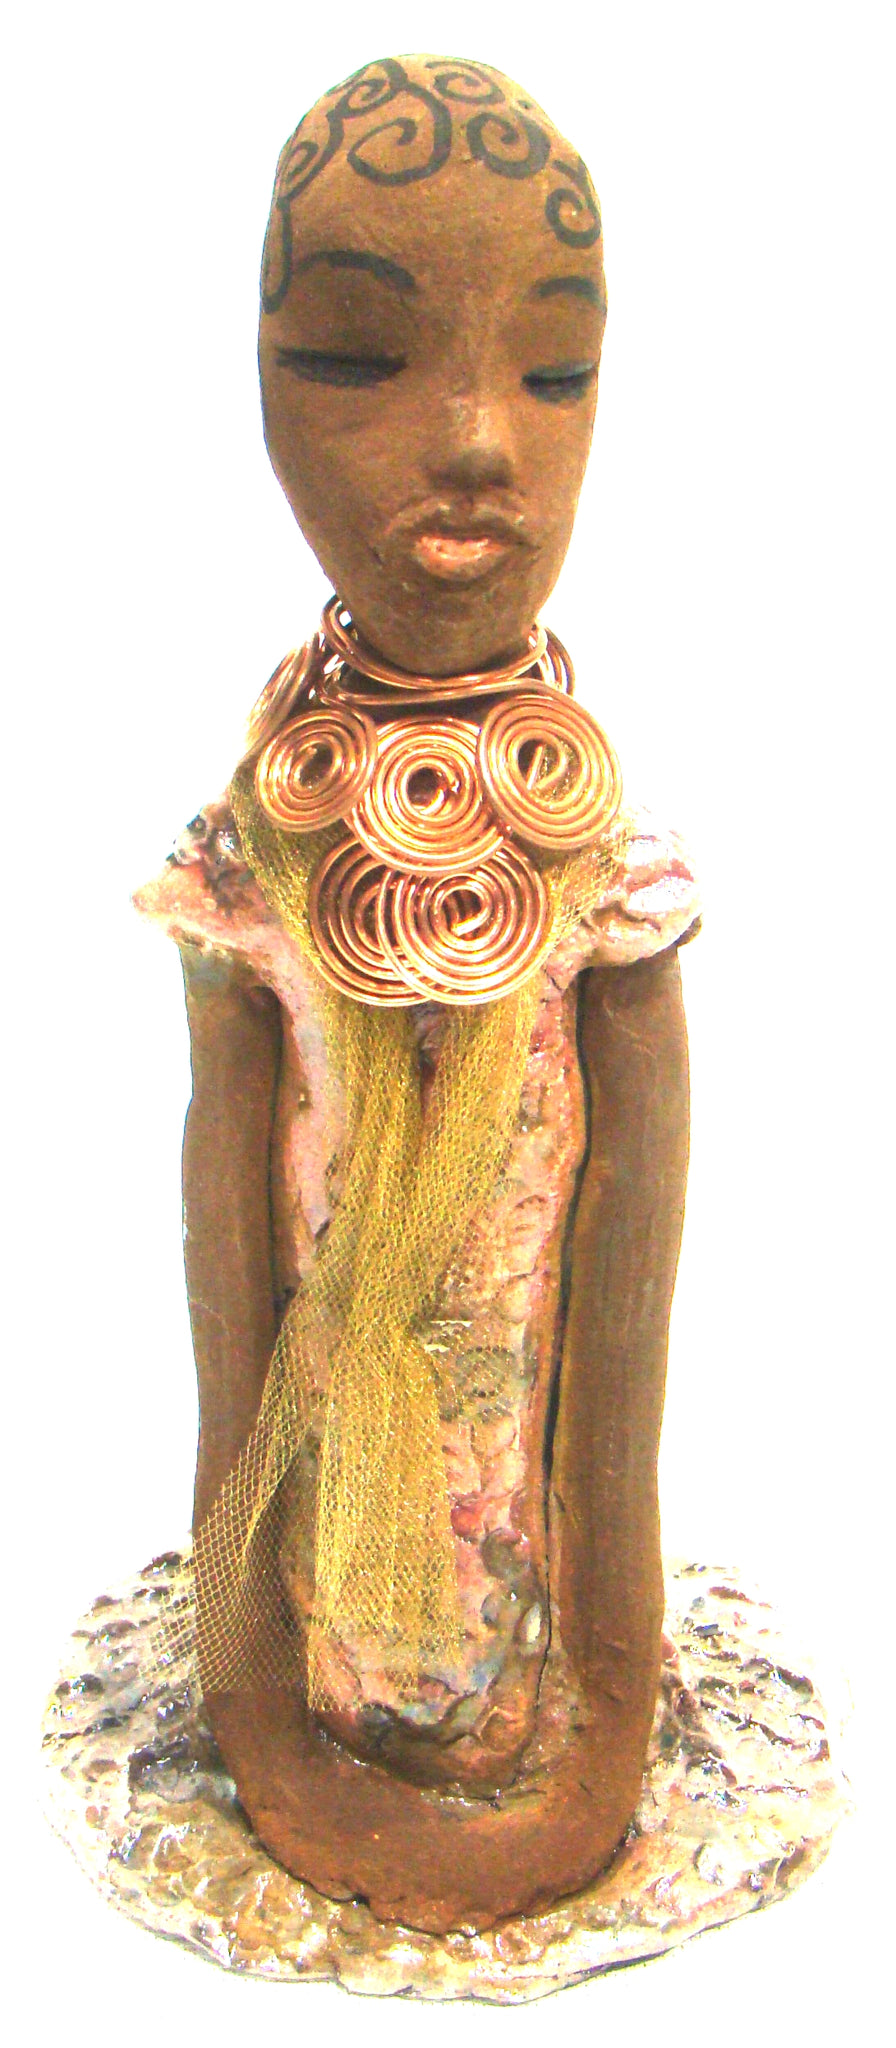 "Wendy stands 9.5"" x 5""x  5"" and weighs 1lbs.     She has a honey brown complexion with ink drawn spiral hair.     Wendy wears a golden tulle scarf underneath a copper spiral necklace.     She wears a bright metallic copper dress.     Her long loving arms rests at her side.     Wendy at 85.00 makes a great deal and starter piece in the Herdew Collection."